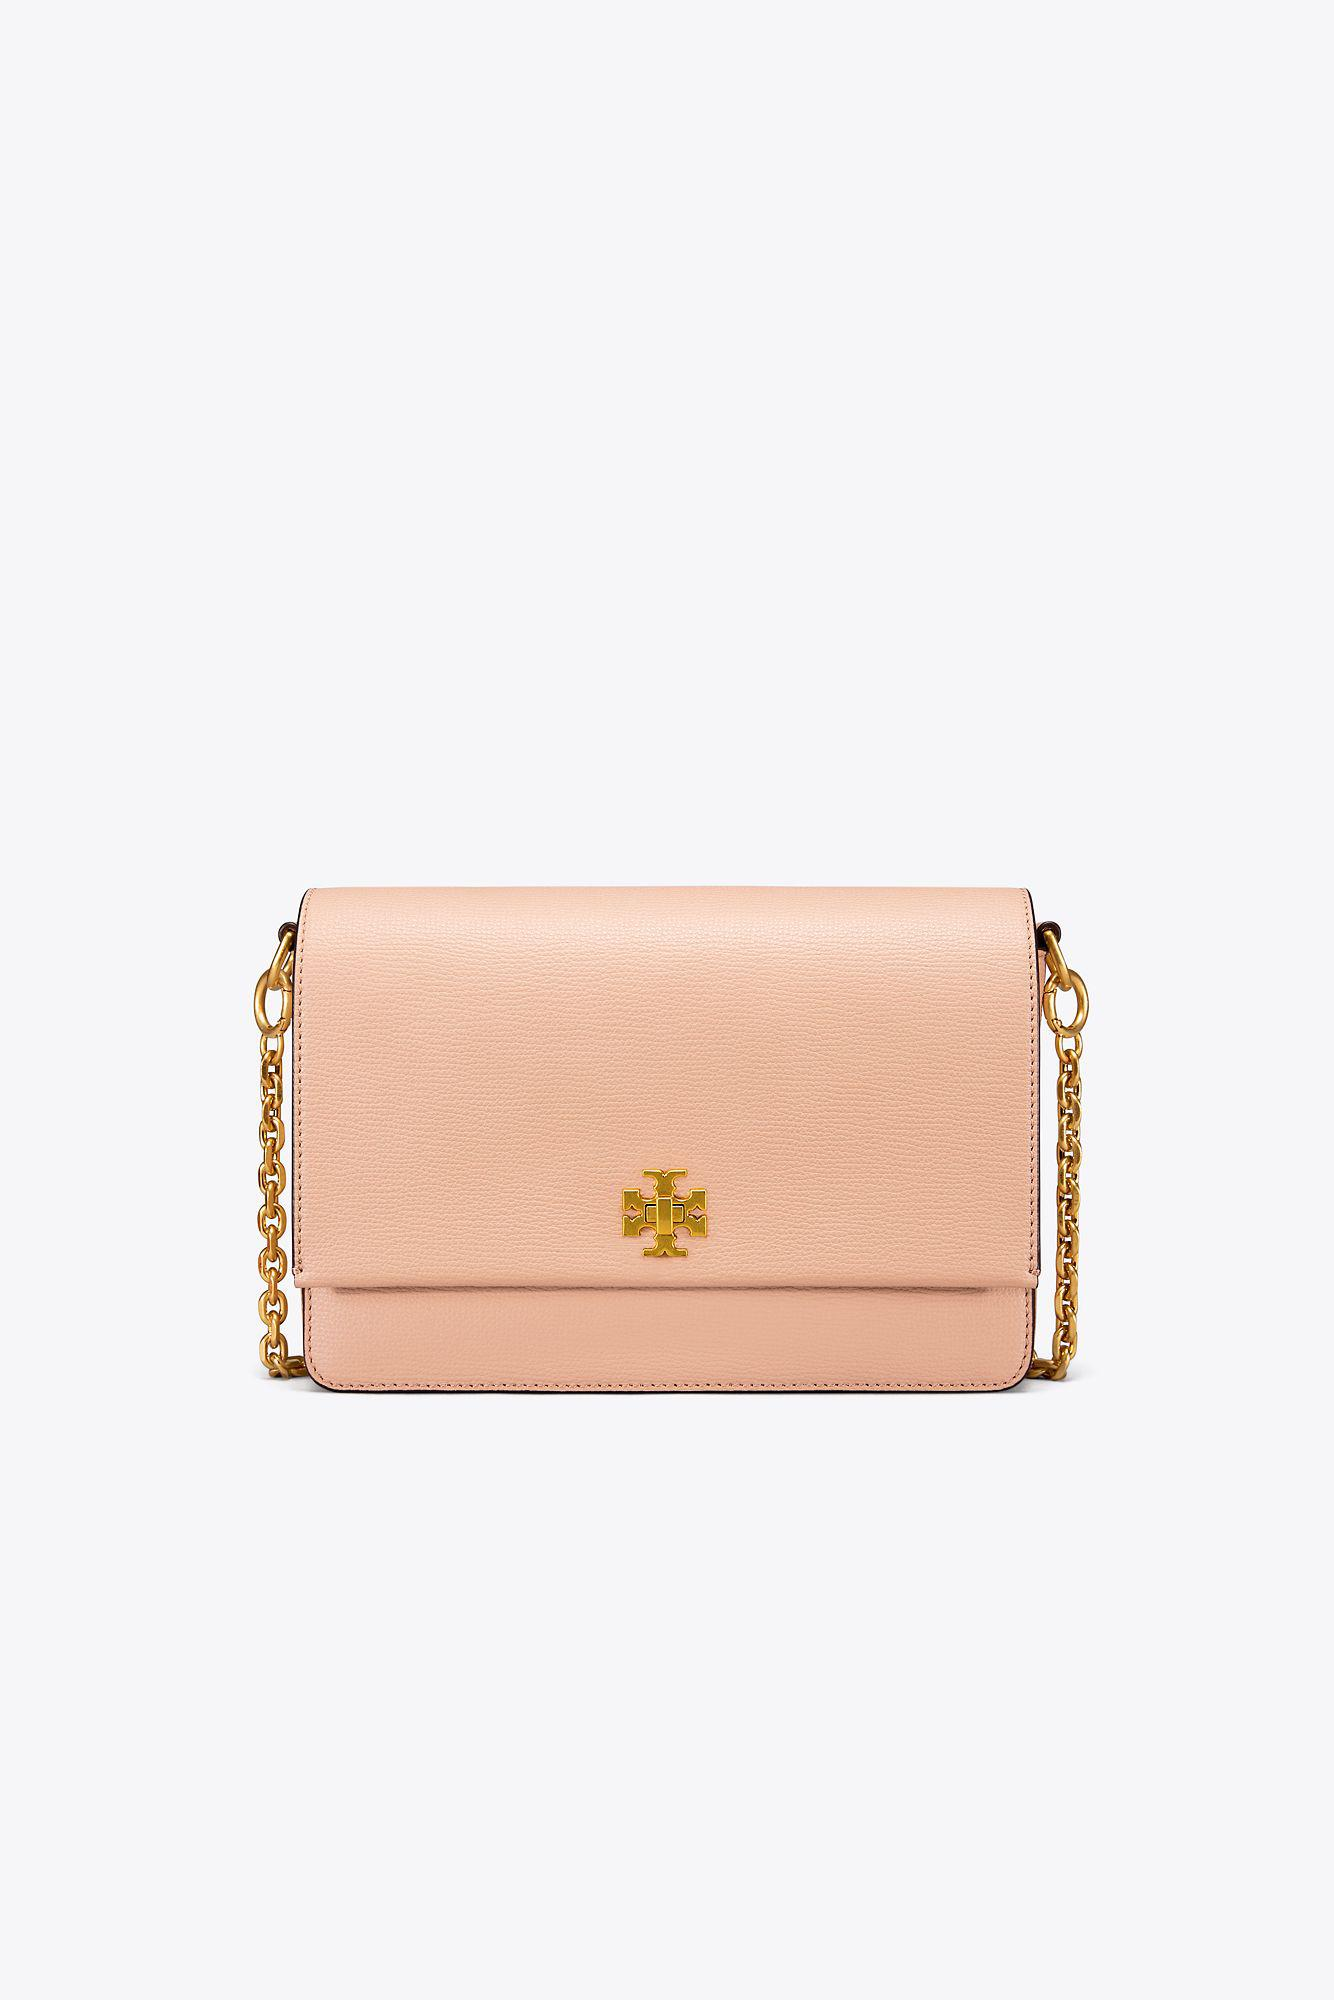 7dc083ce7cc5c Tory Burch Kira Double-strap Shoulder Bag in Natural - Lyst